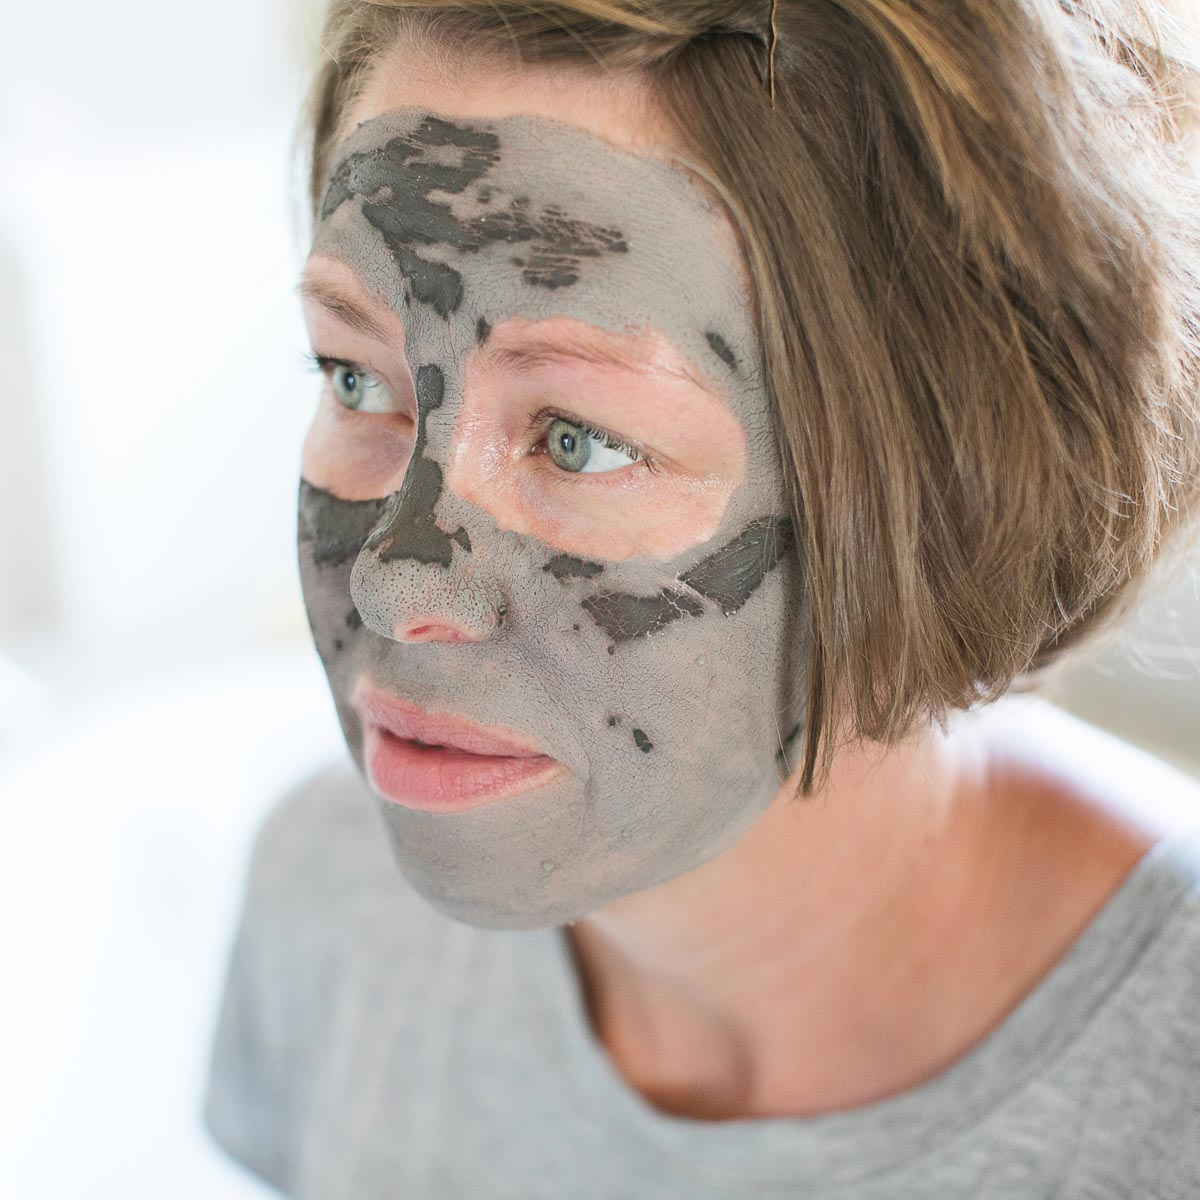 A clay mask begins to dry on a woman's face